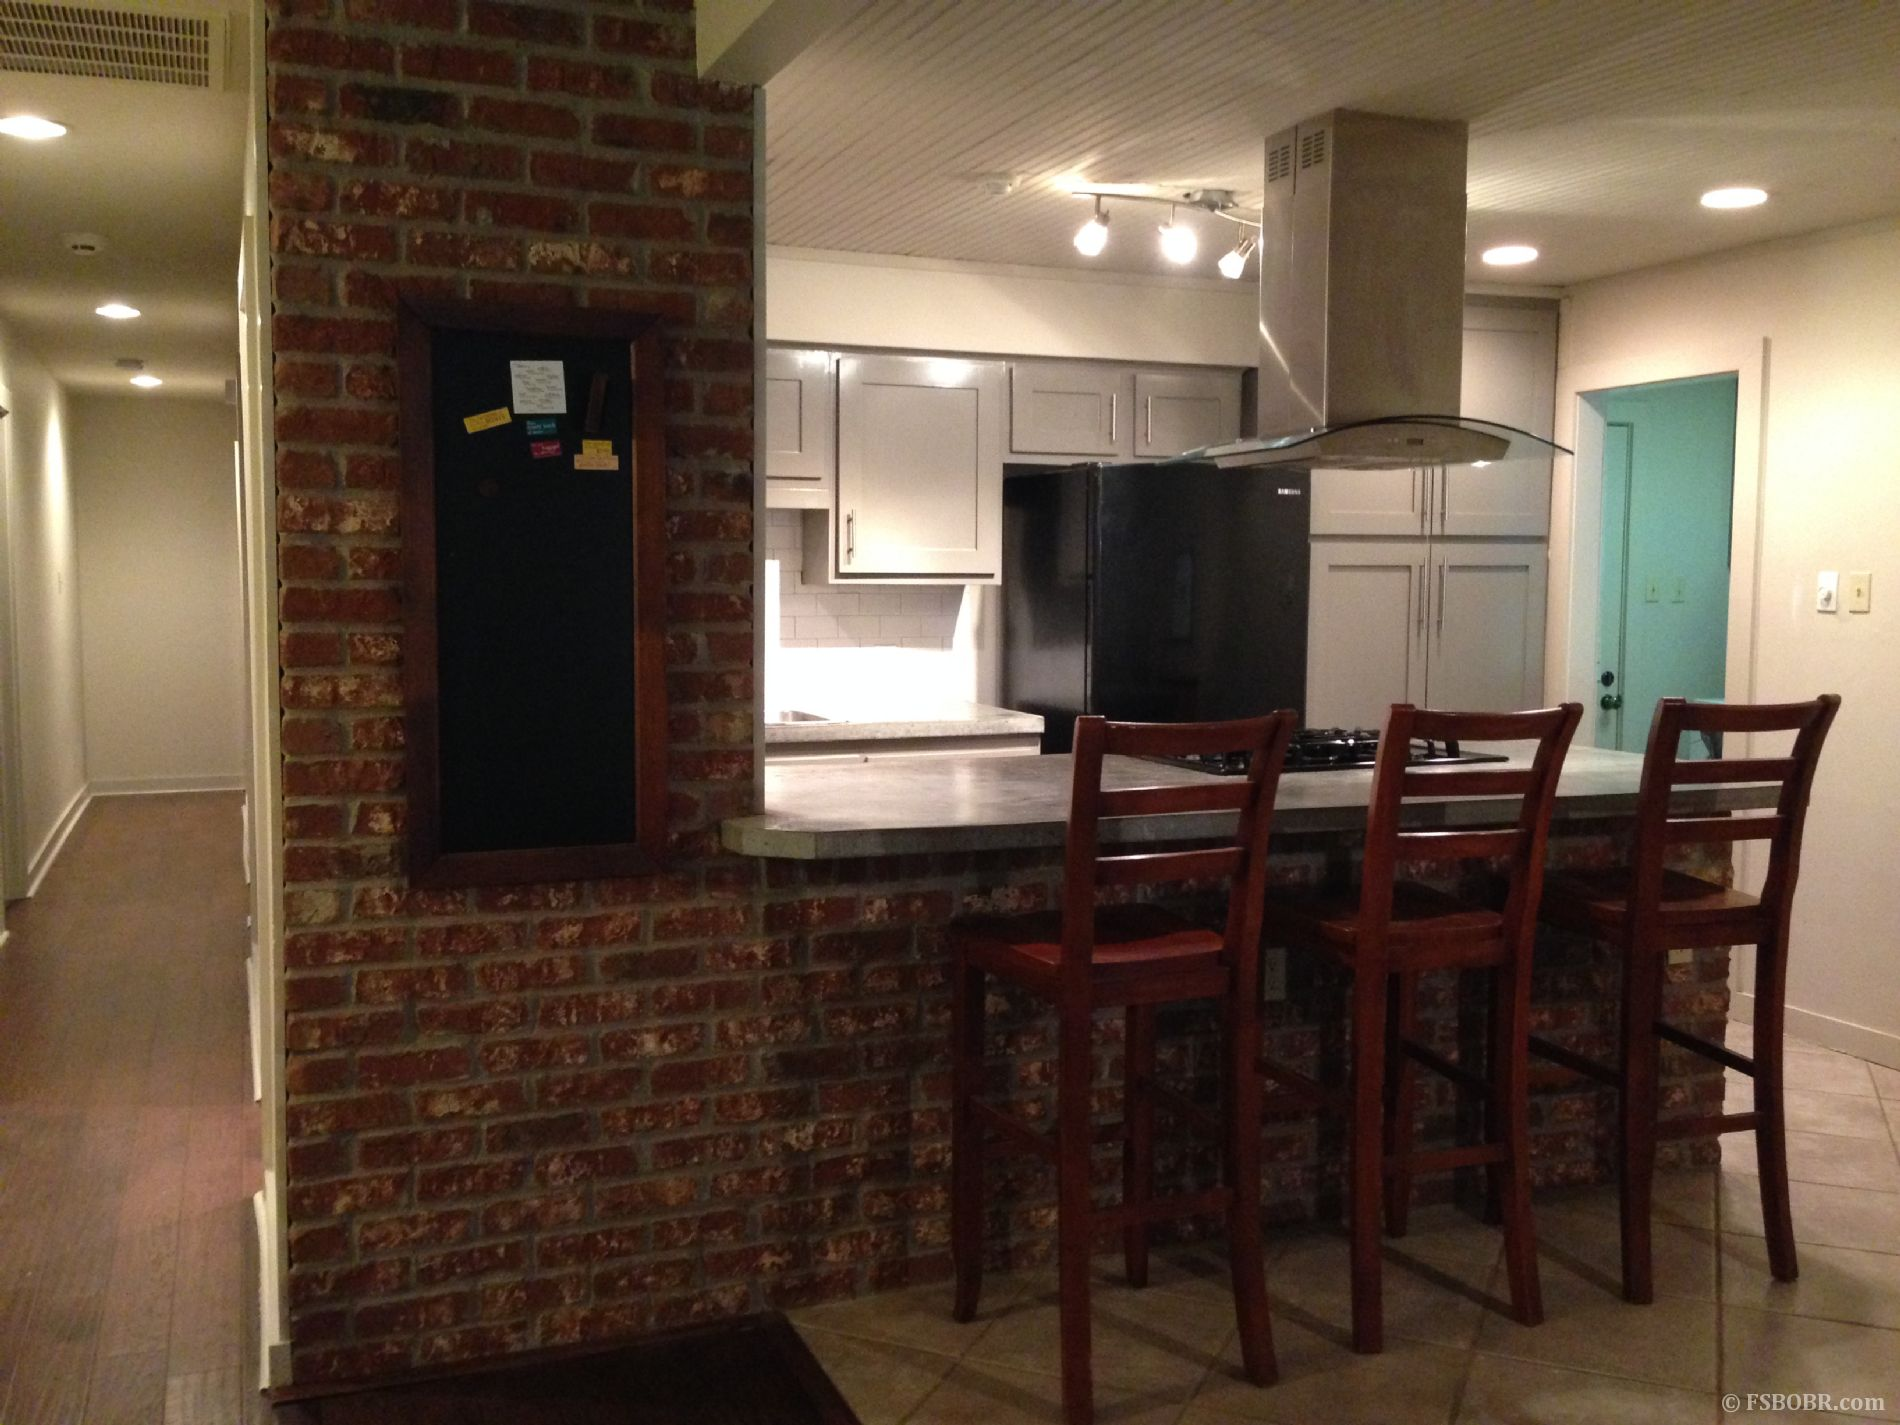 Beautifully Renovated Kitchen With Concrete Countertops